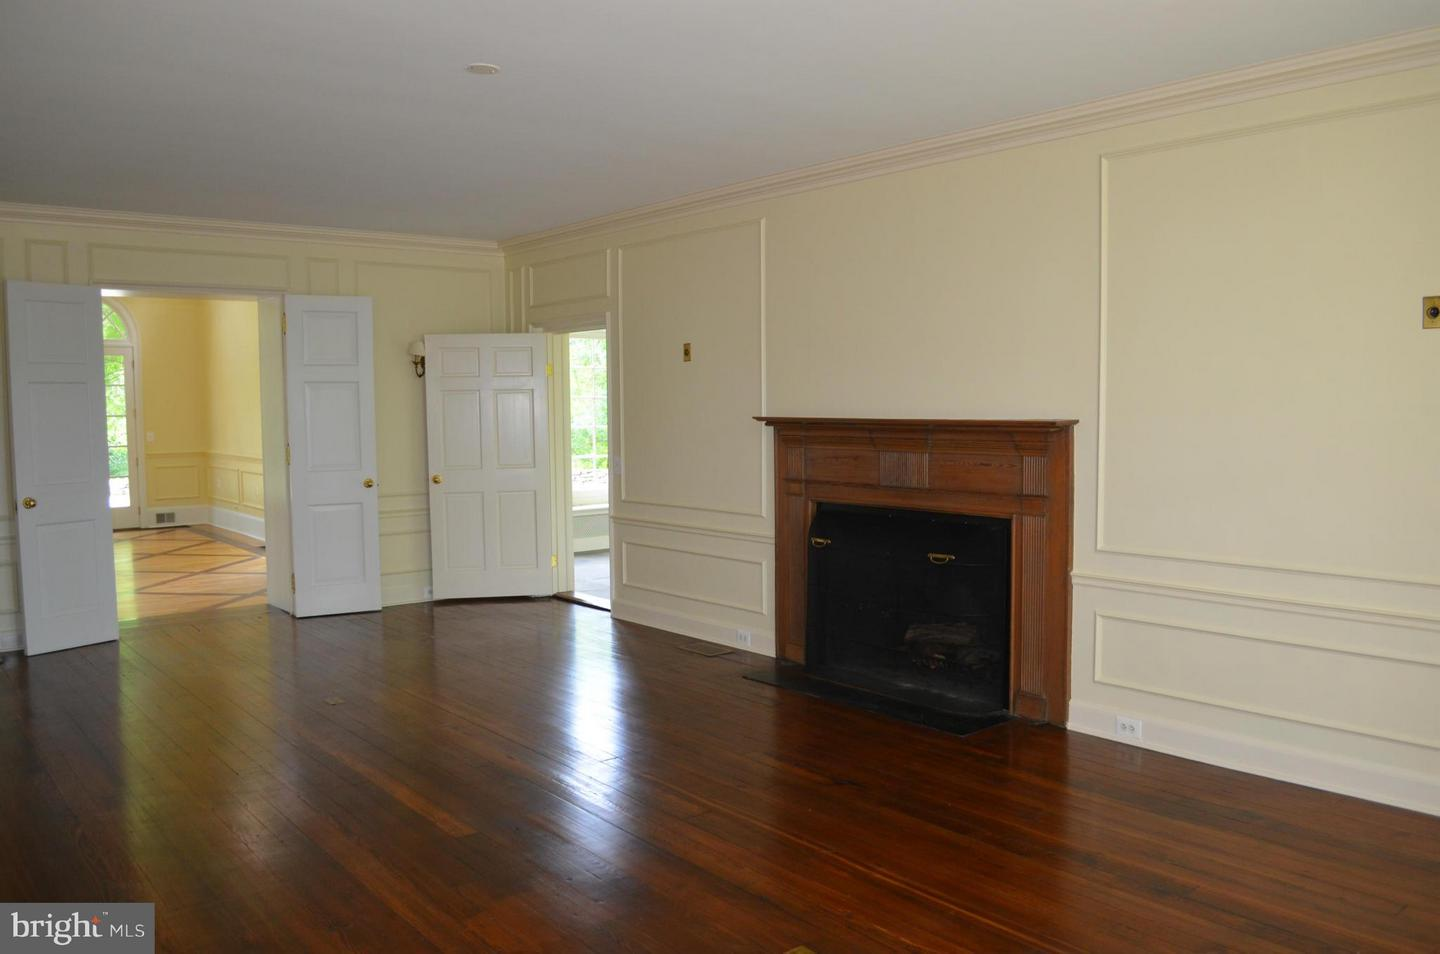 Additional photo for property listing at 39280 Snickersville Tpke  Middleburg, Virginia 20117 United States